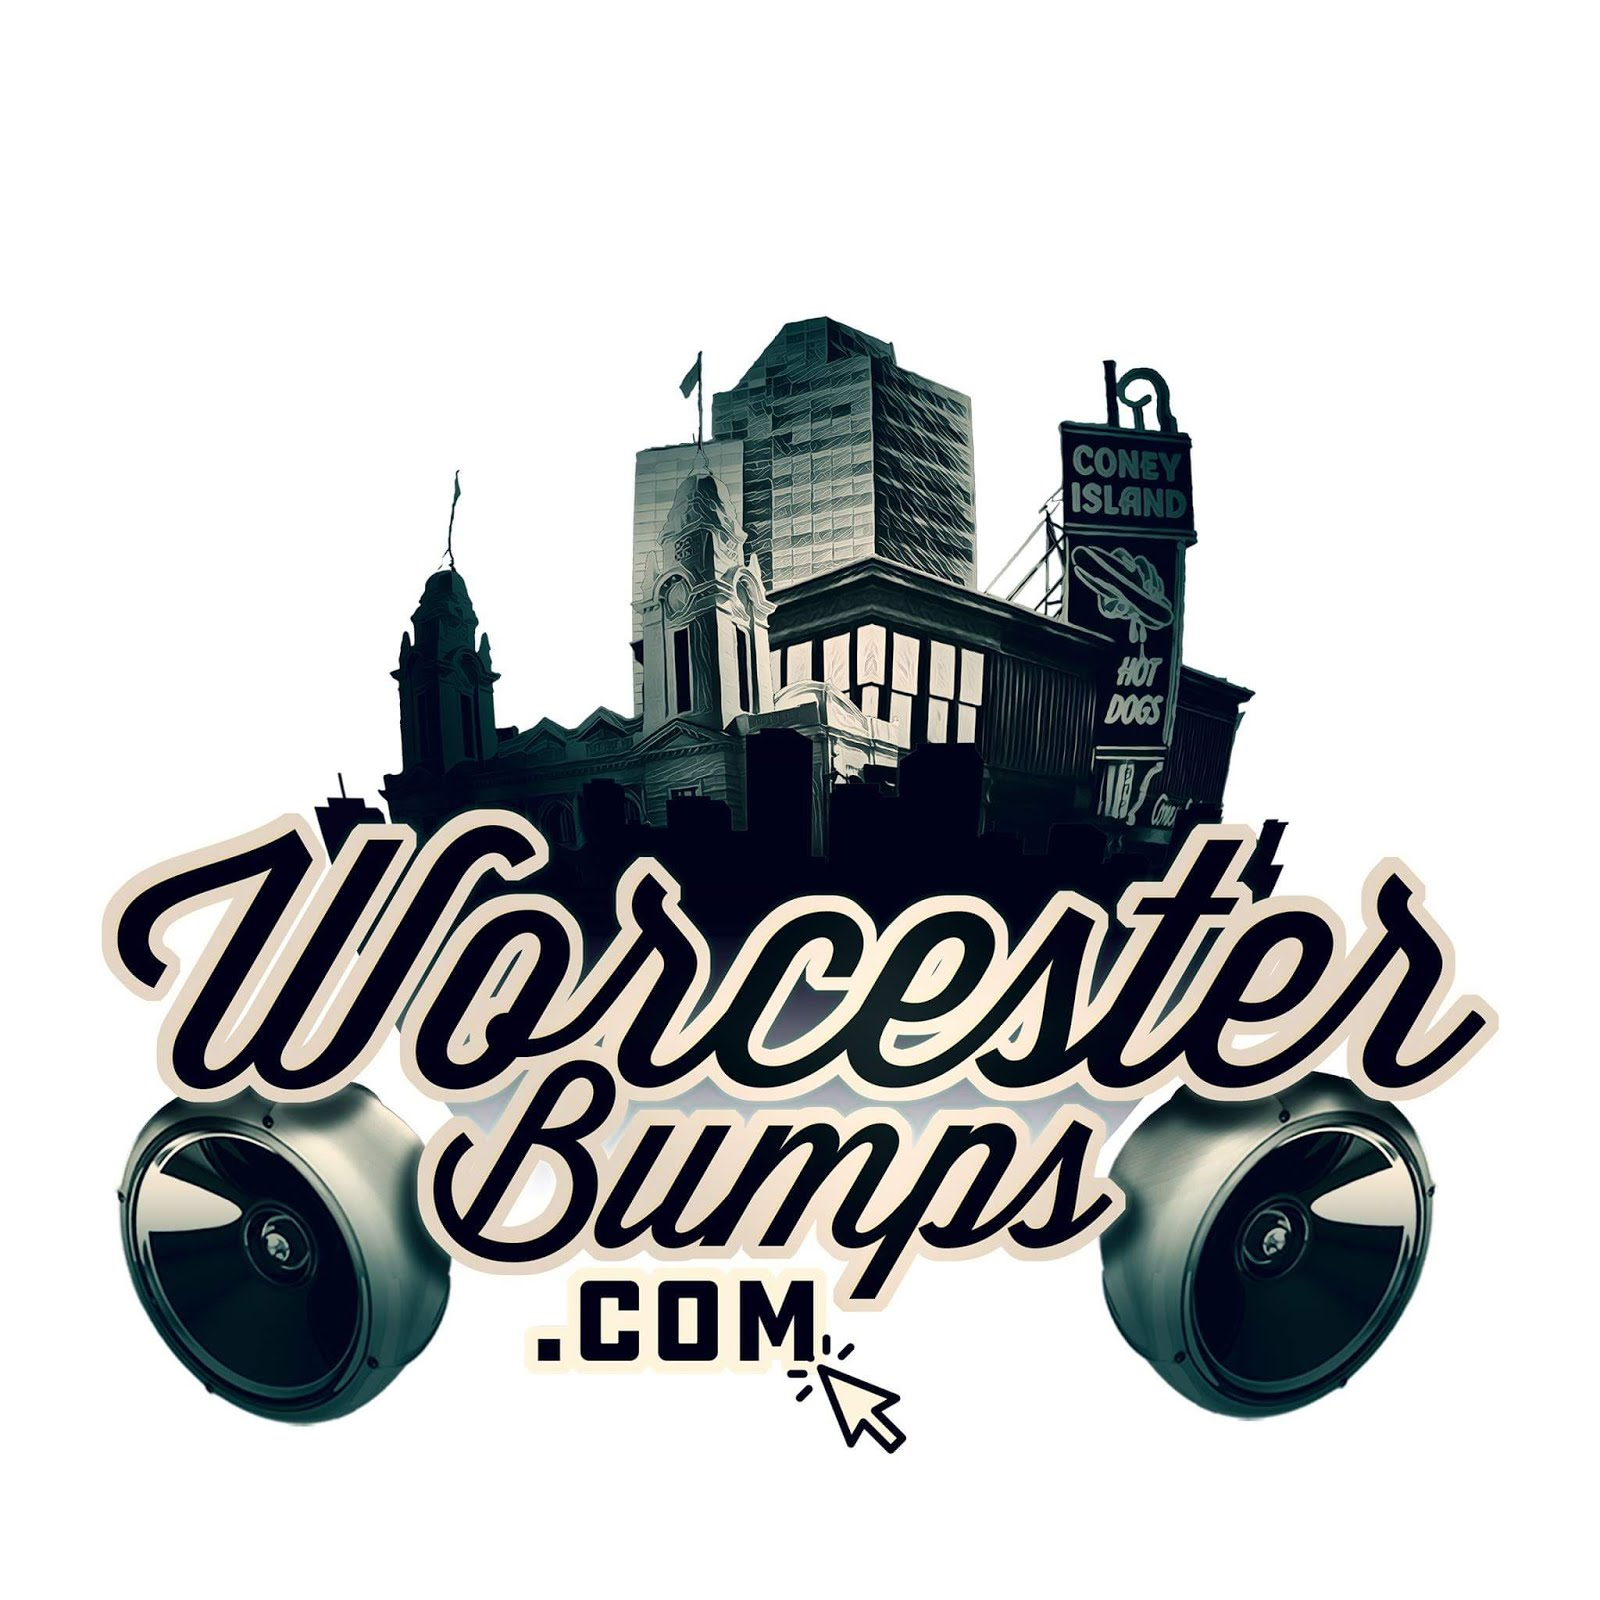 #WorcesterBumps - For The Culture